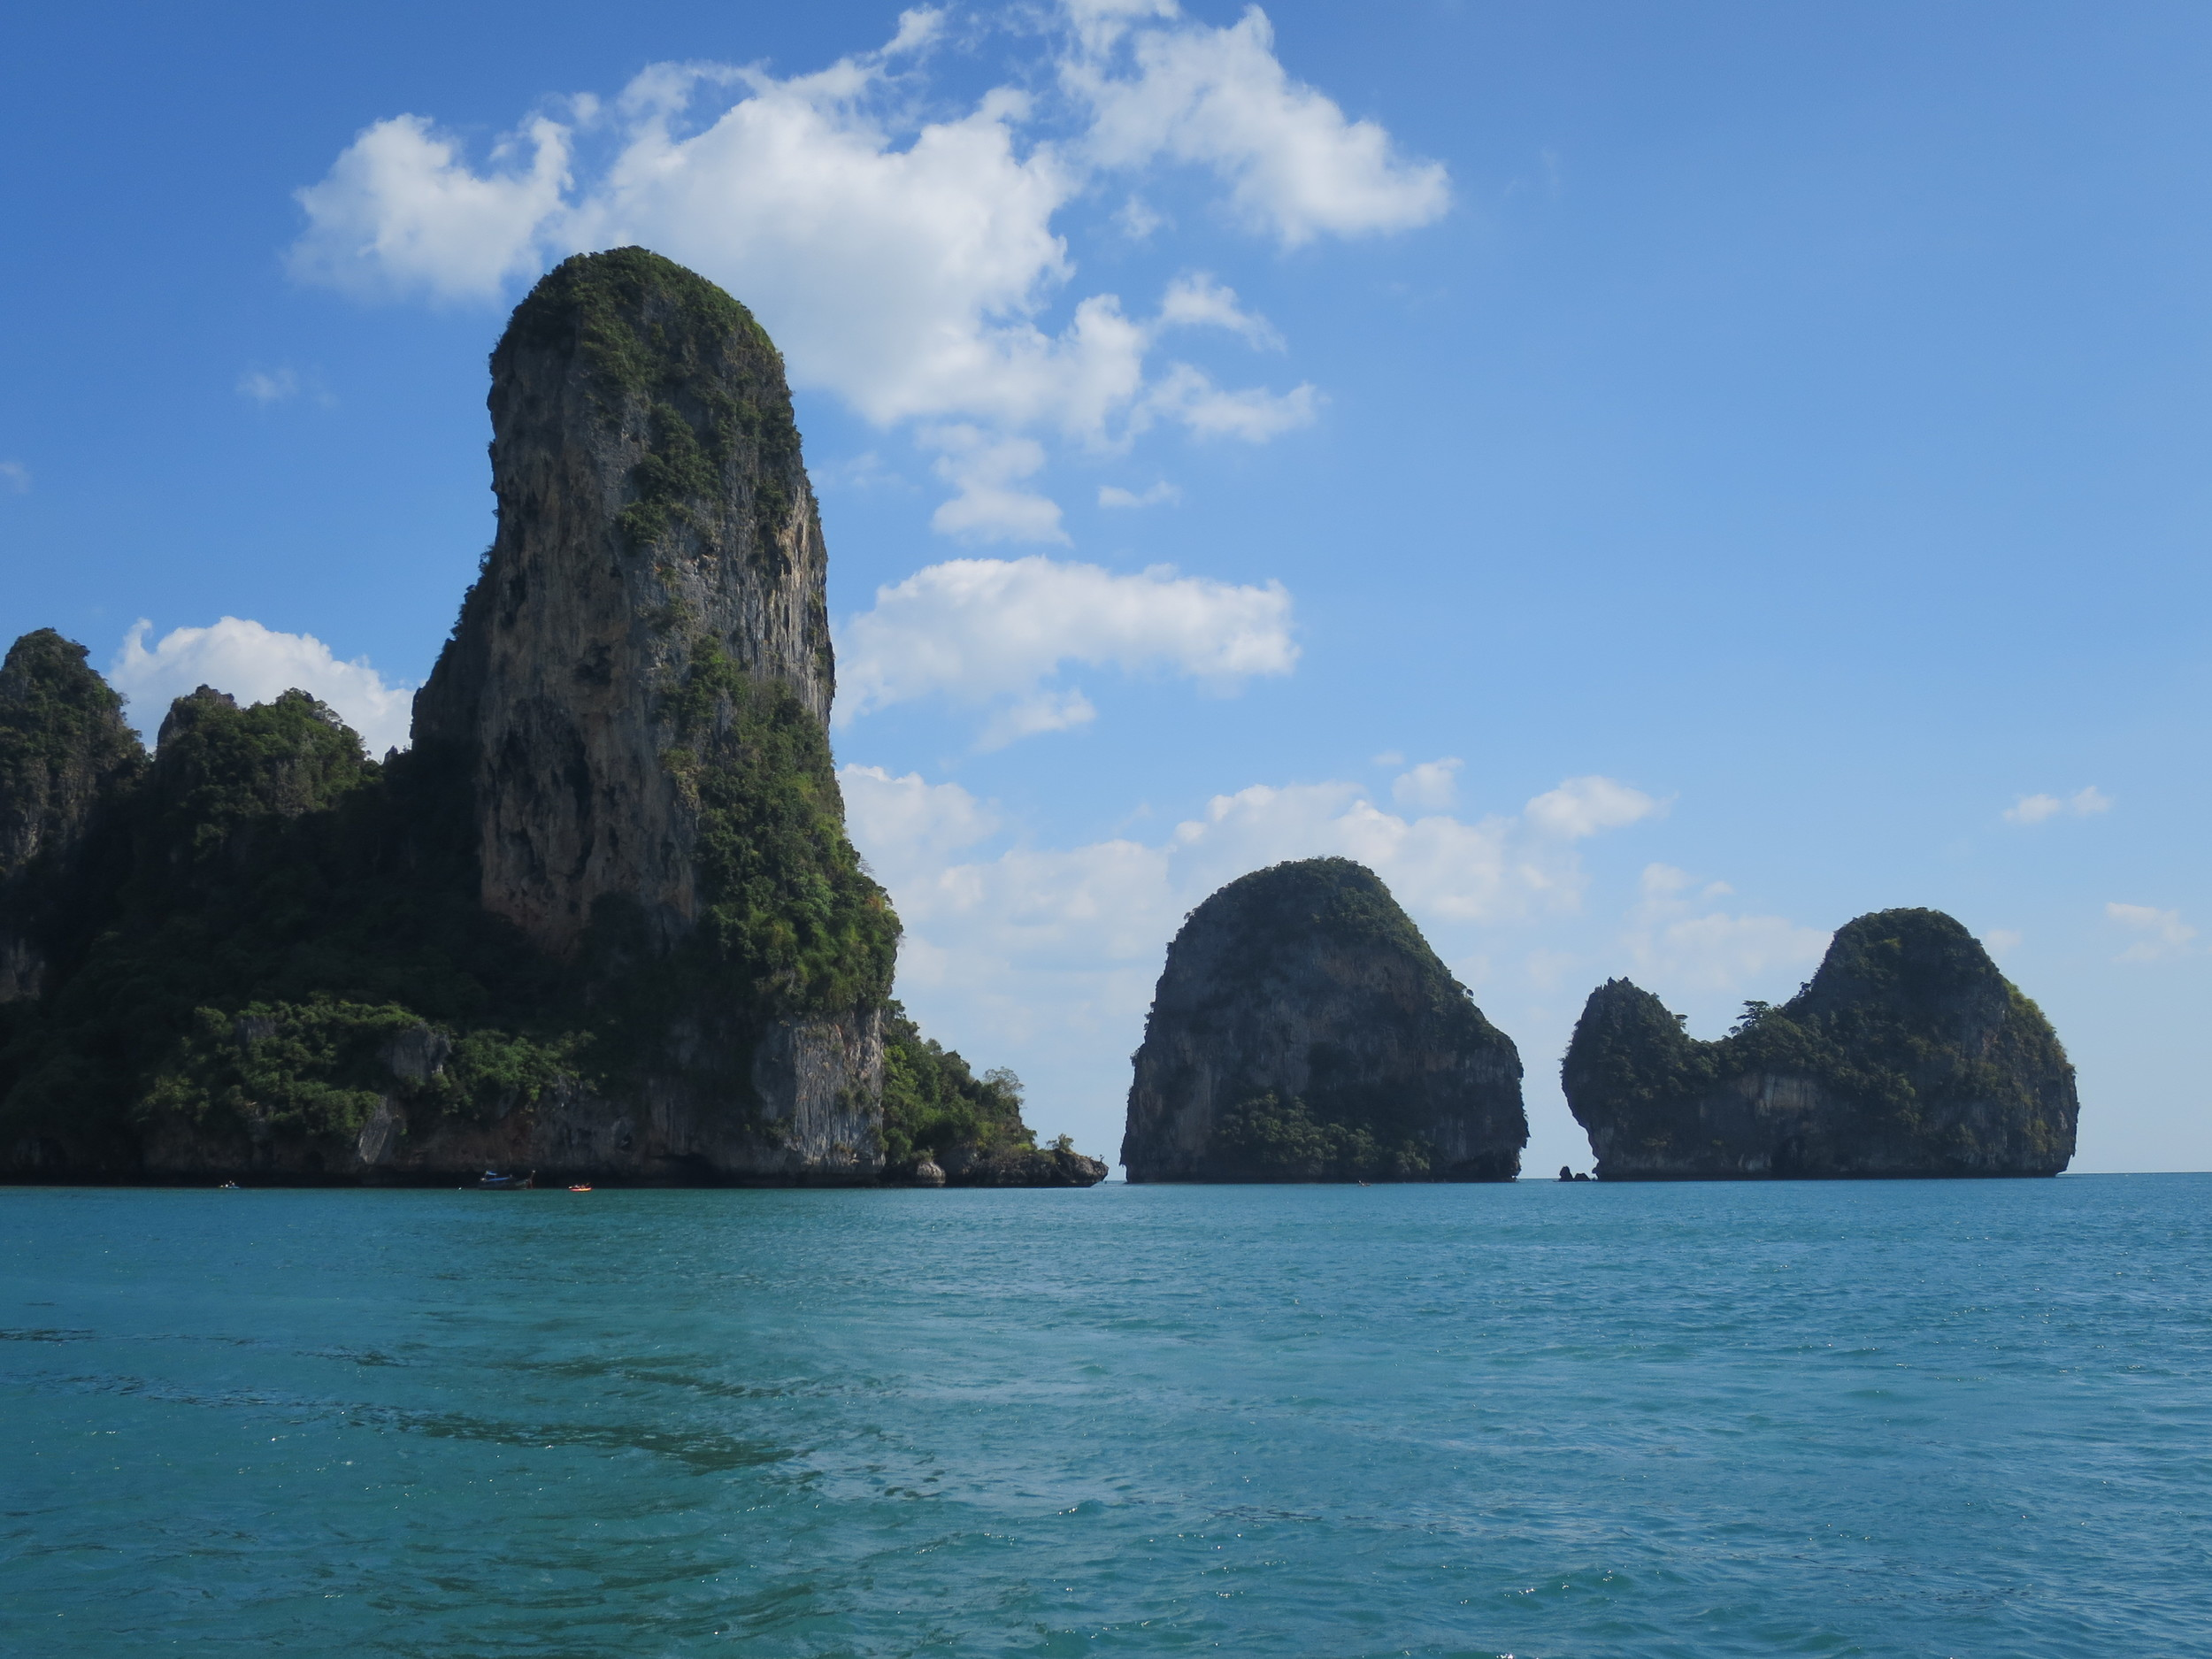 Arrival at Railay